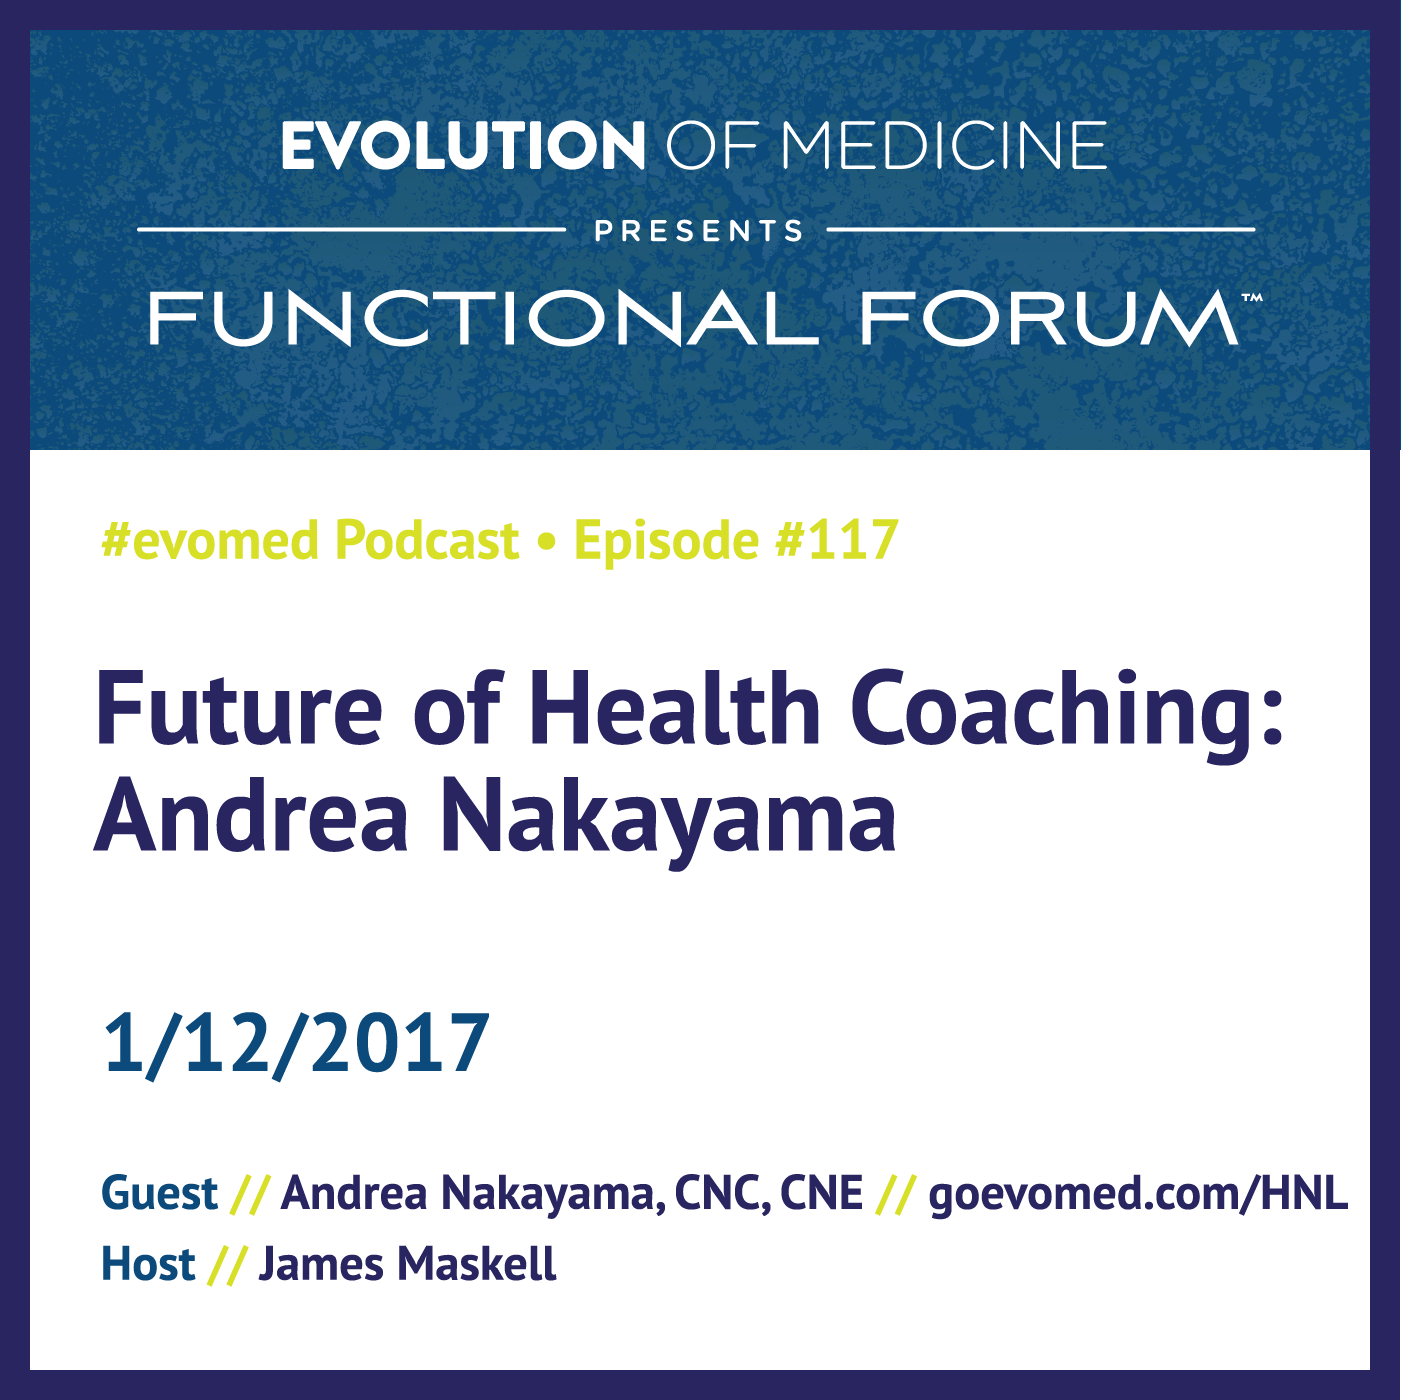 Future of Health Coaching: Andrea Nakayama